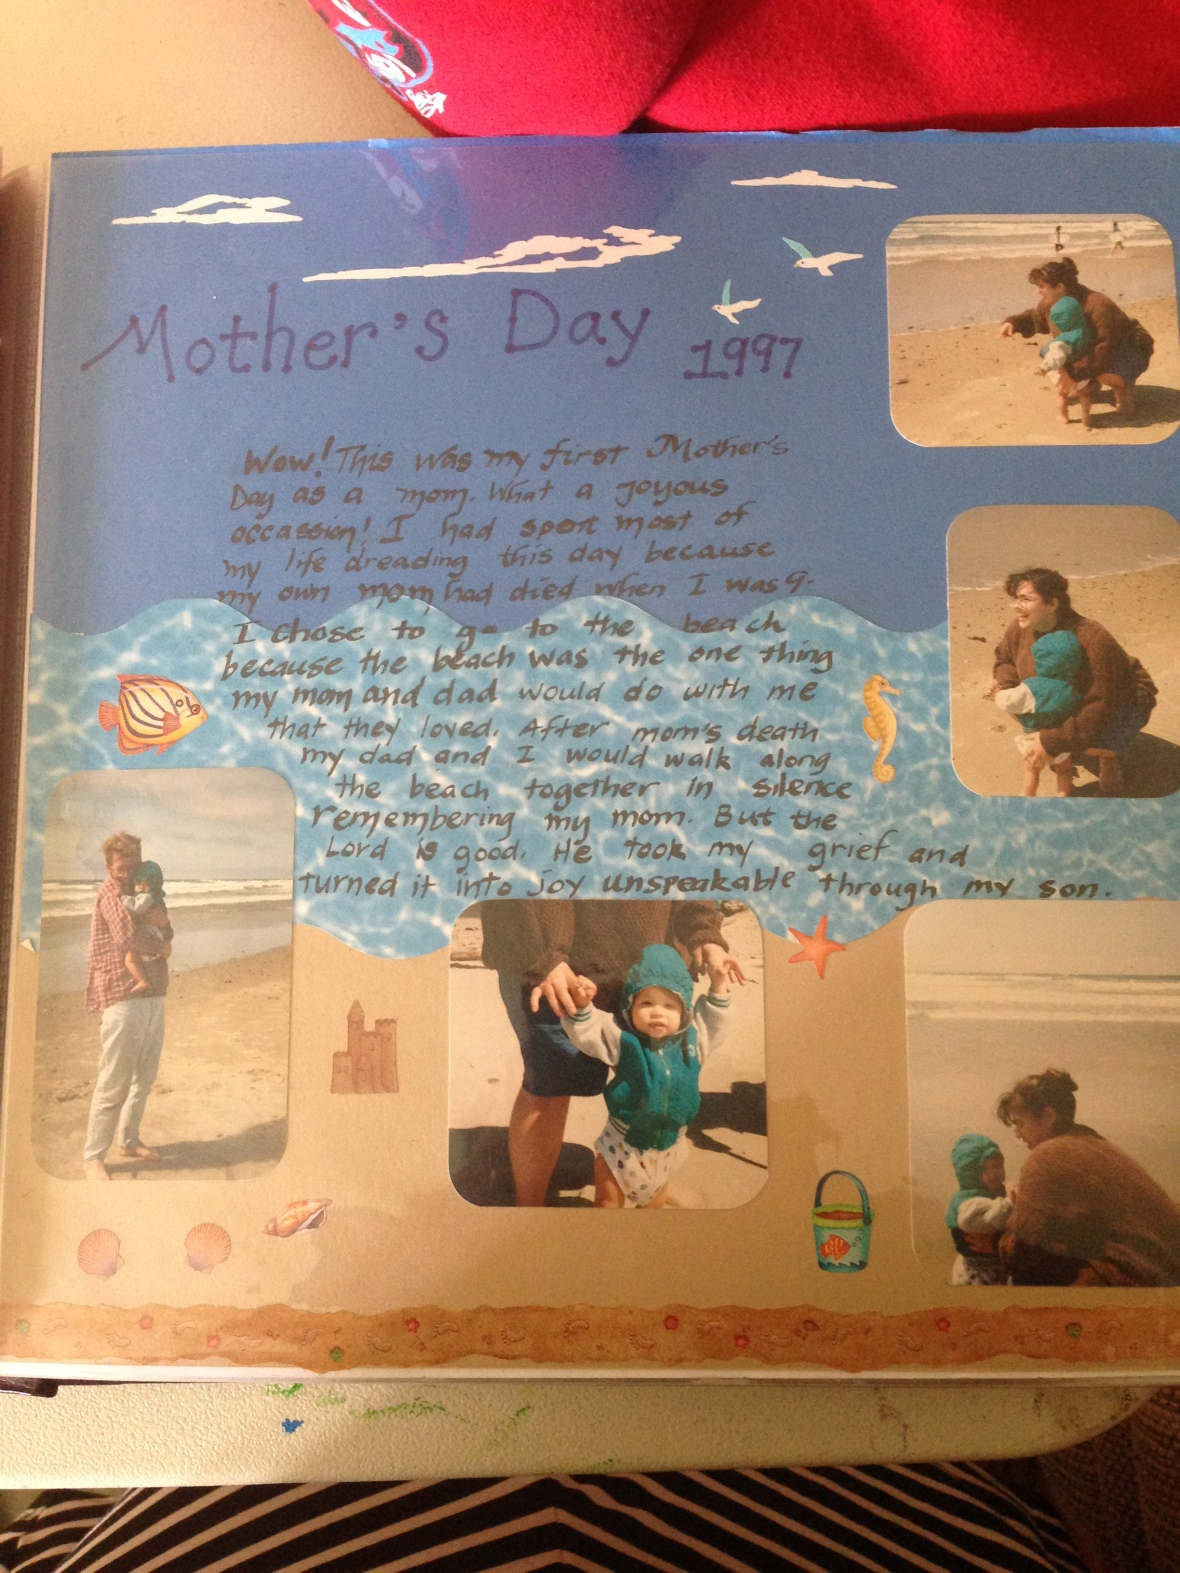 A page from my scrapbook. This boy wasn't thrilled with the sand, but he got over it.